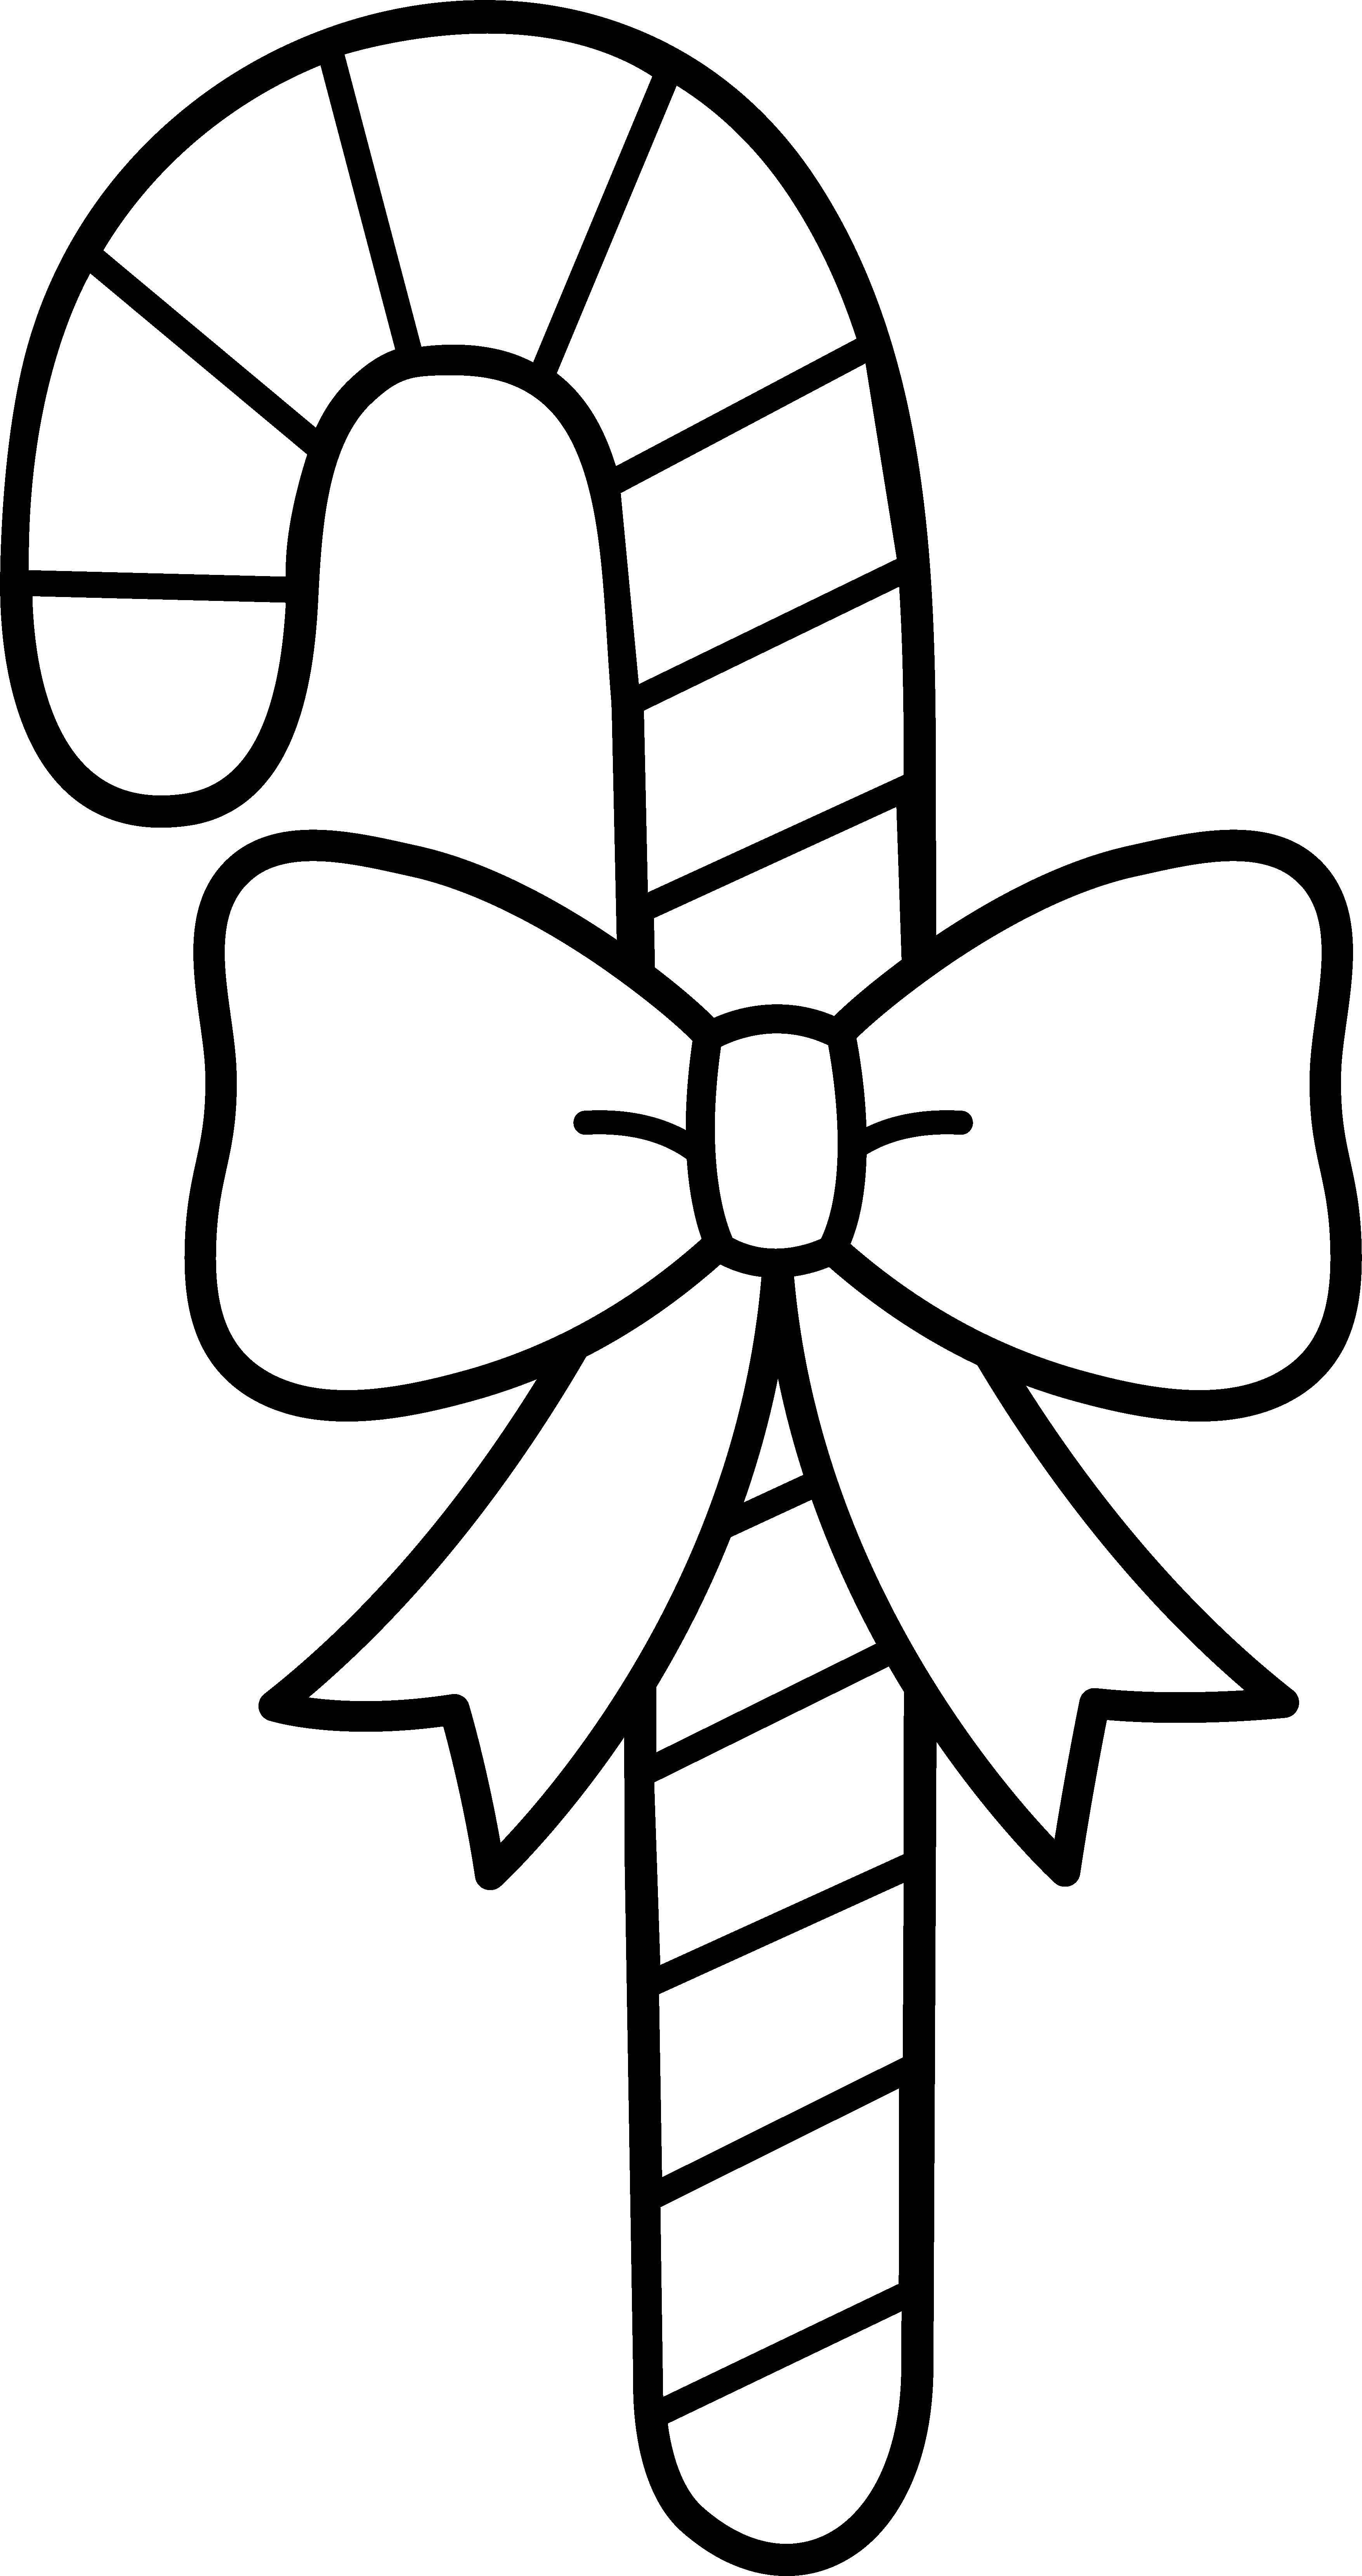 3509x6636 Imagination Candy Cane Print Out Printable Coloring Pages